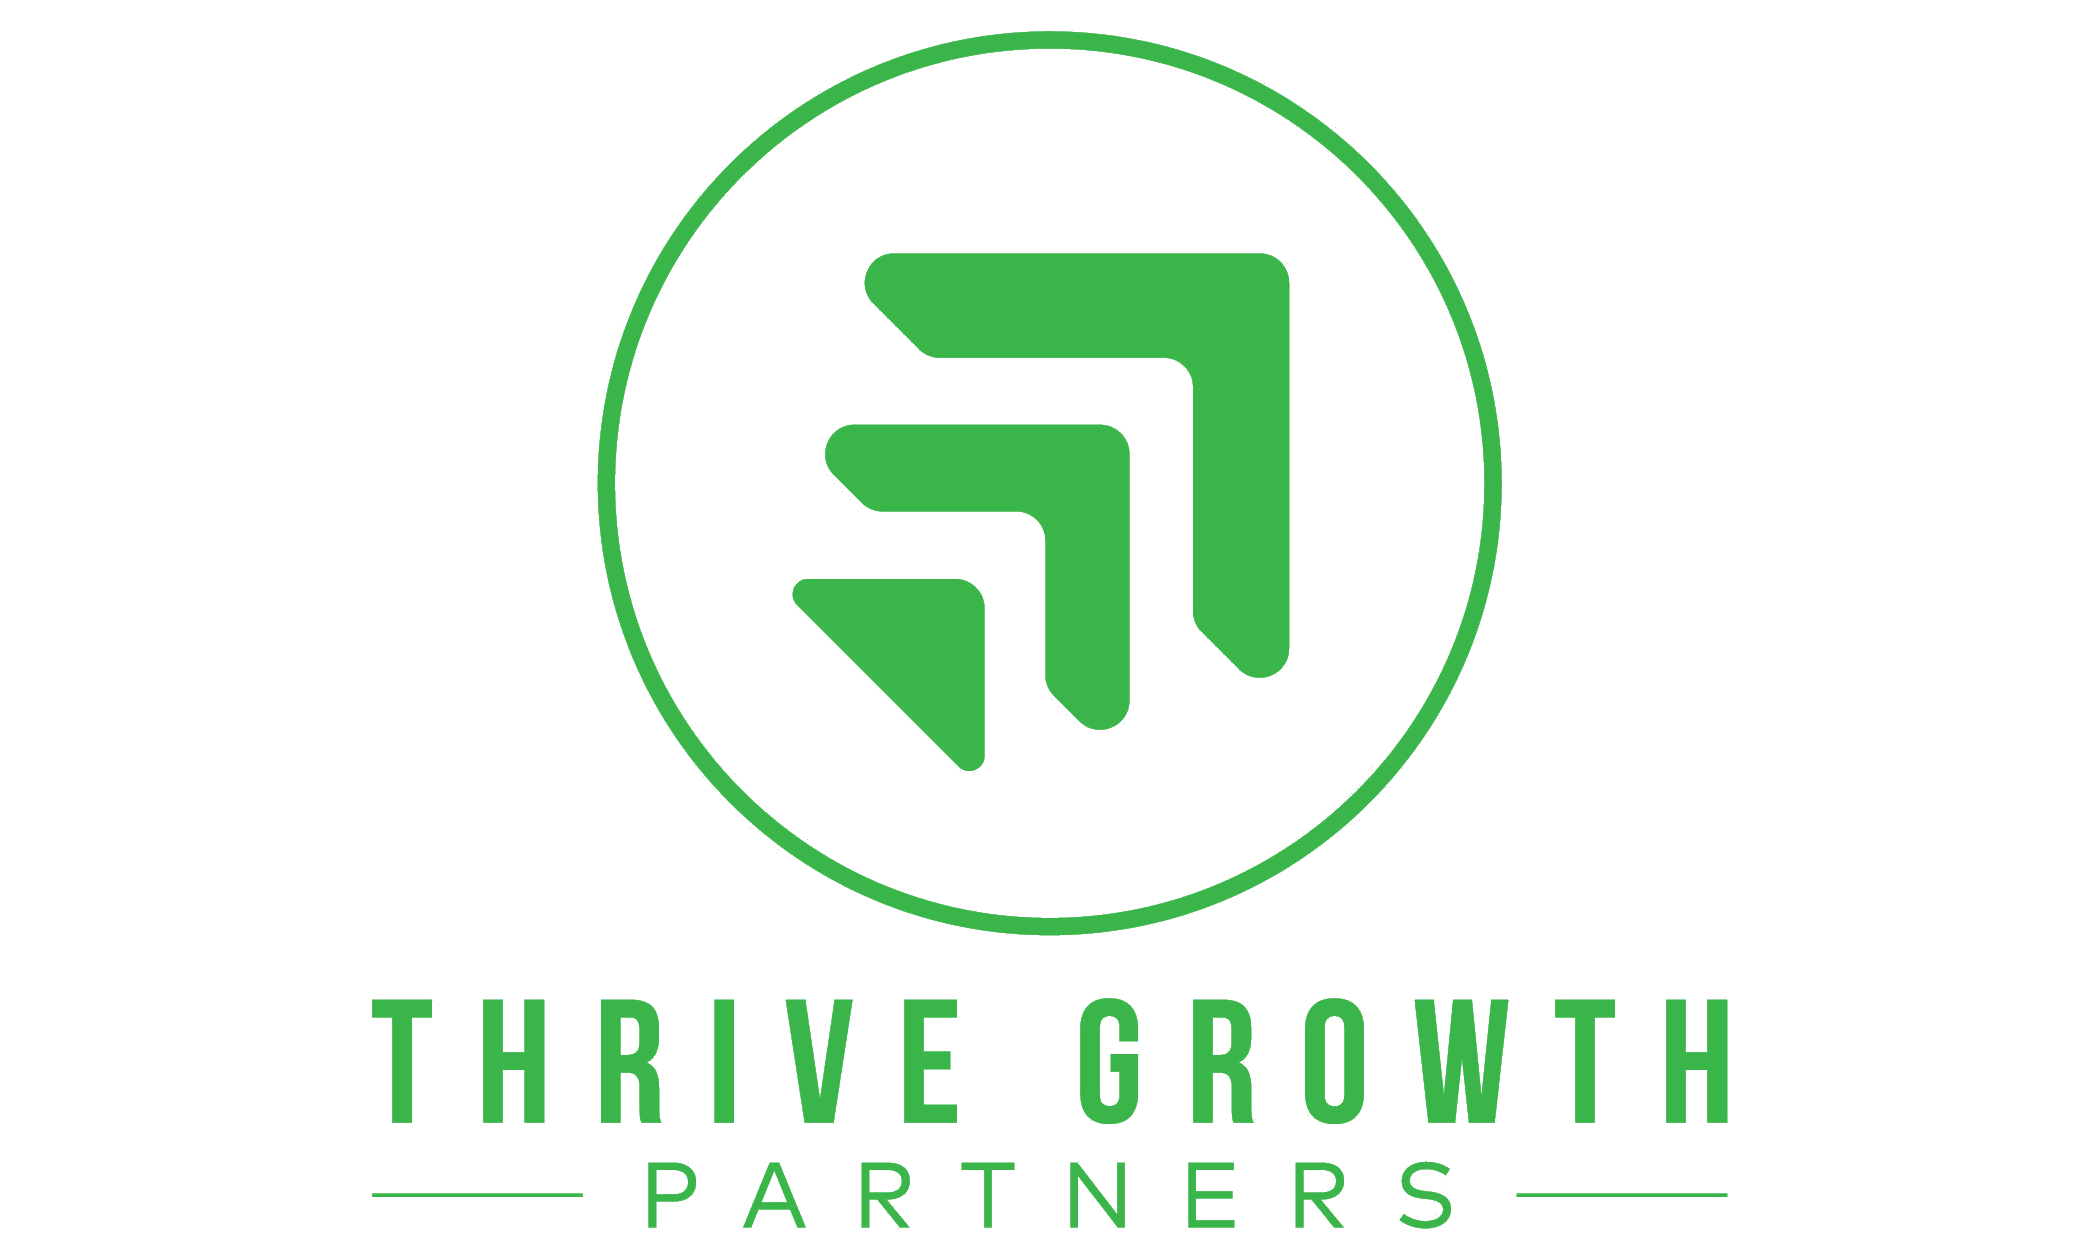 Thrive Growth Partners